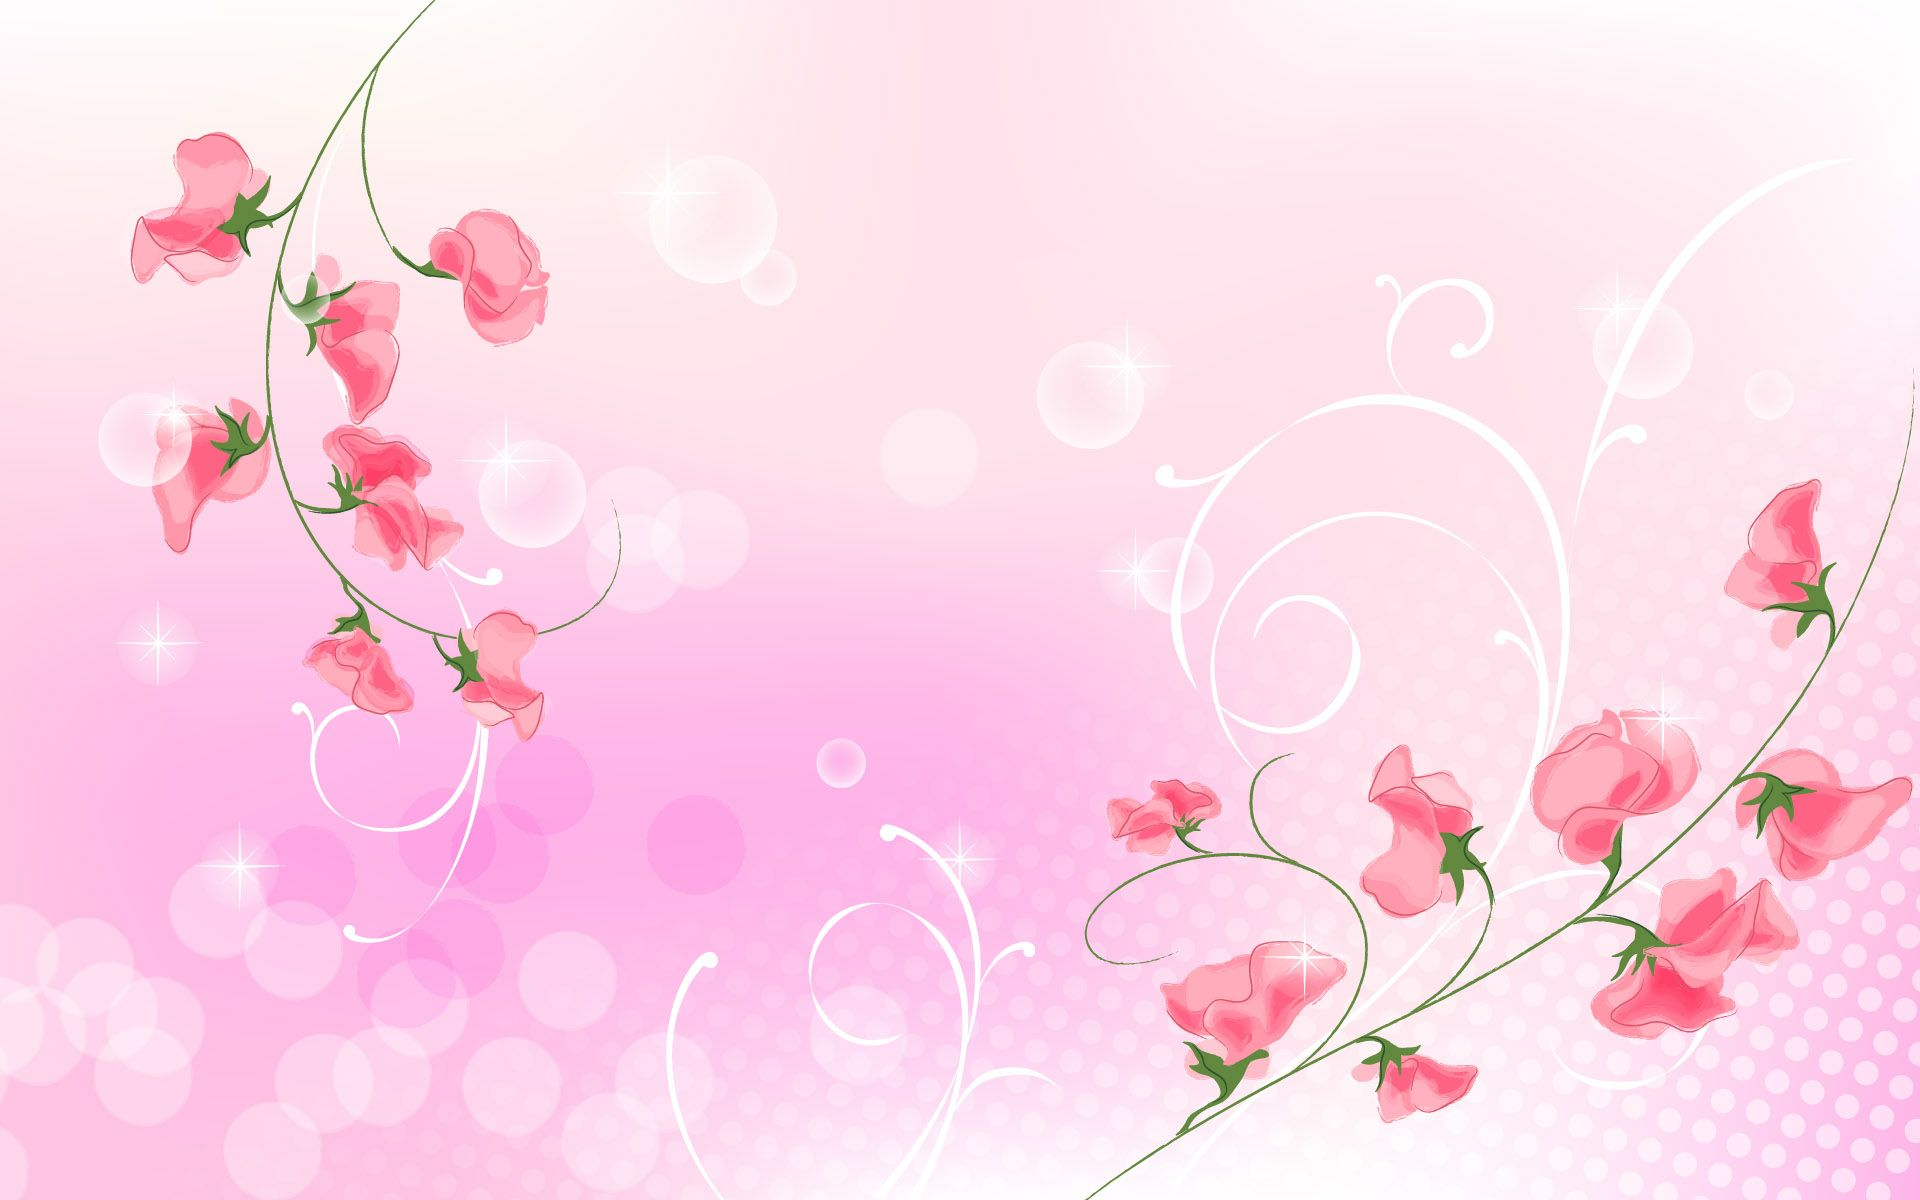 floral backgrounds | ... Flower and Light Pink Background, a Great Fit for Each Other - Cartoon